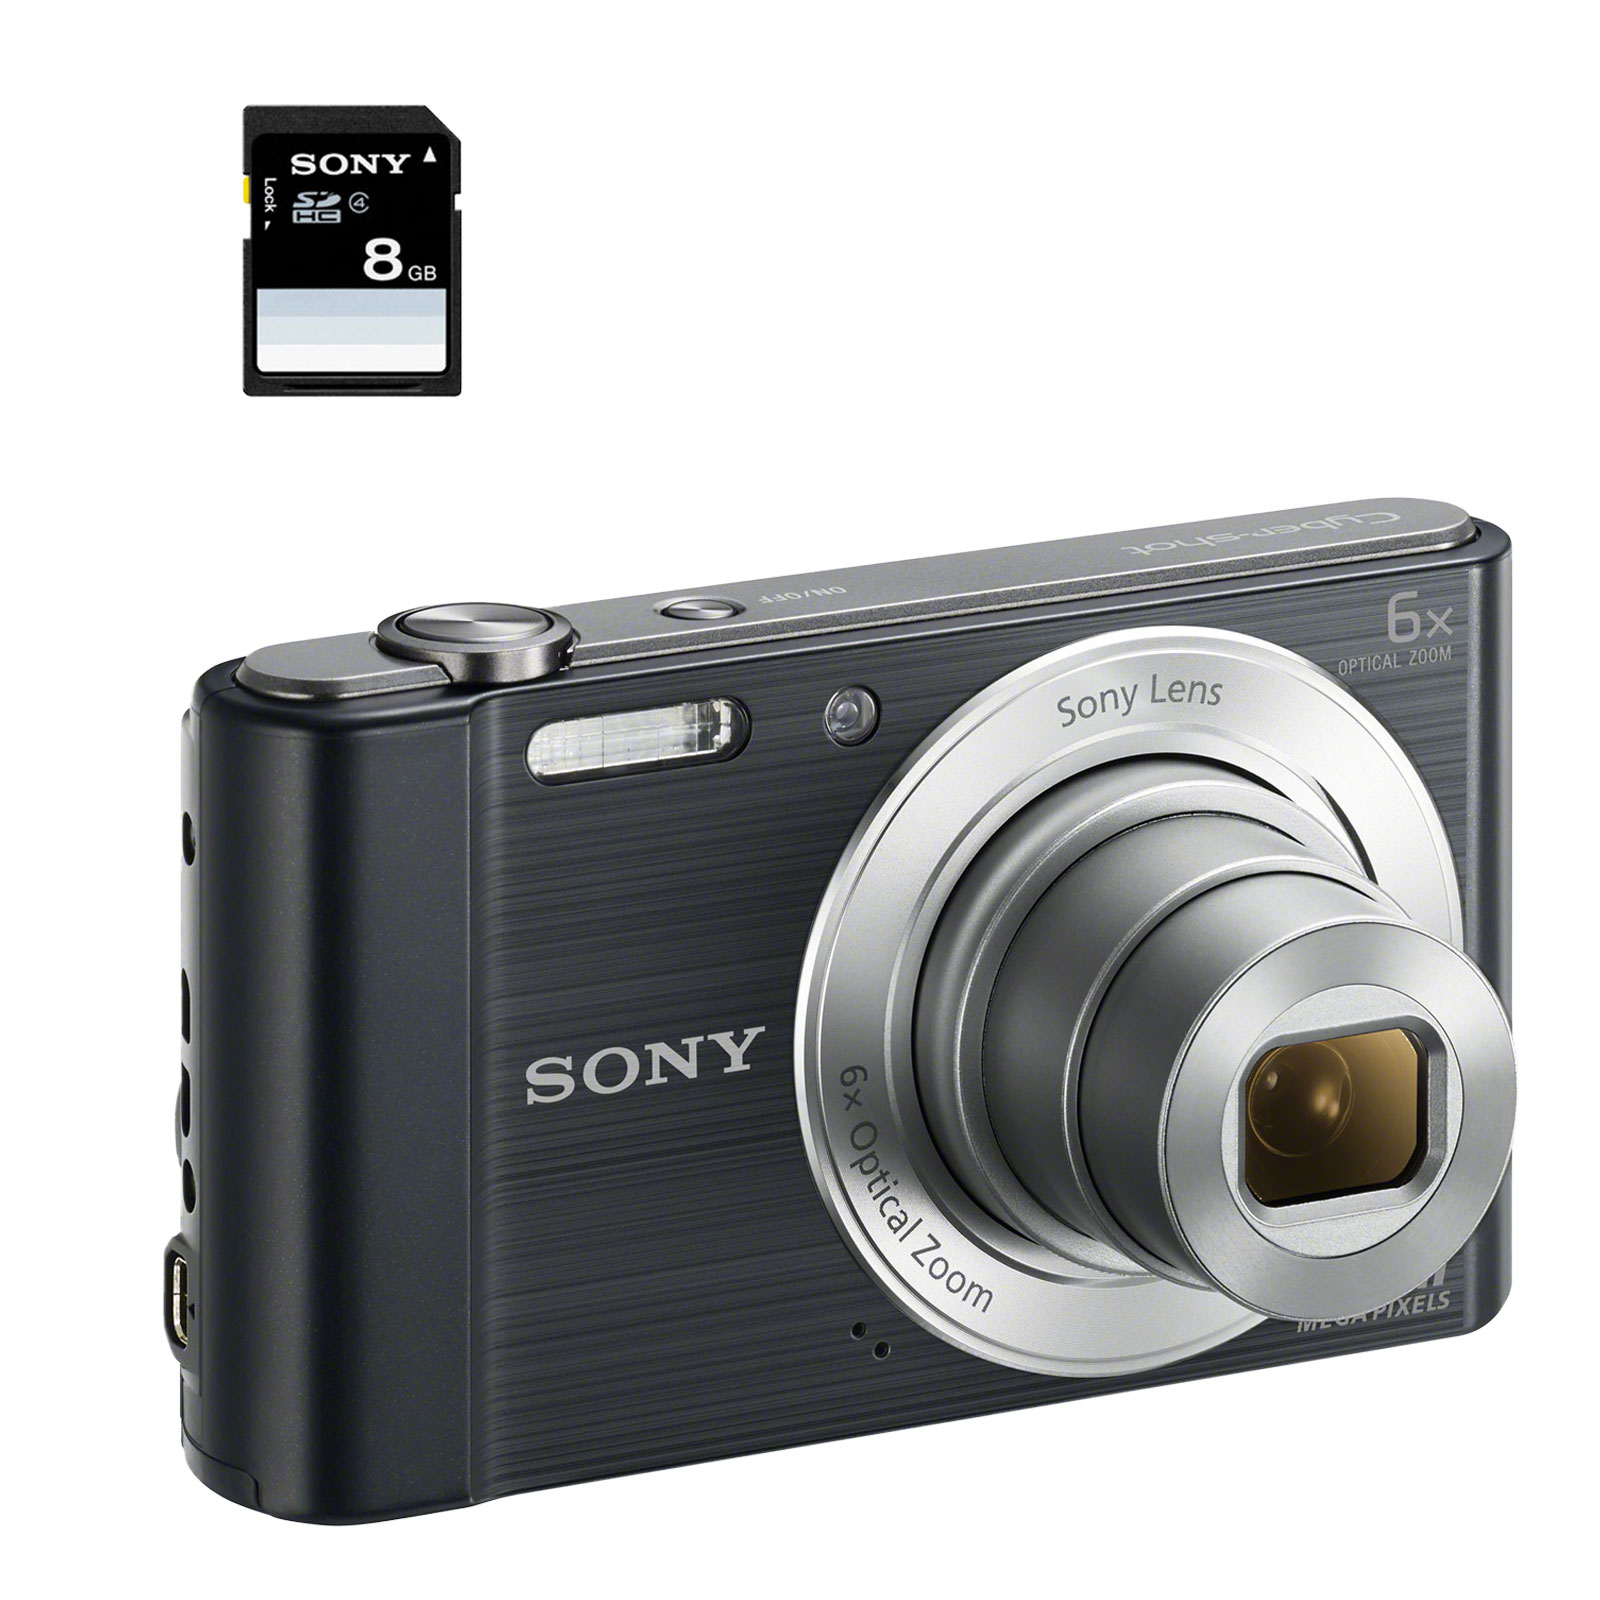 Sony dsc w810 pack carte m moire noir dscw810bsd8di yf for Ecran noir appareil photo 3ds